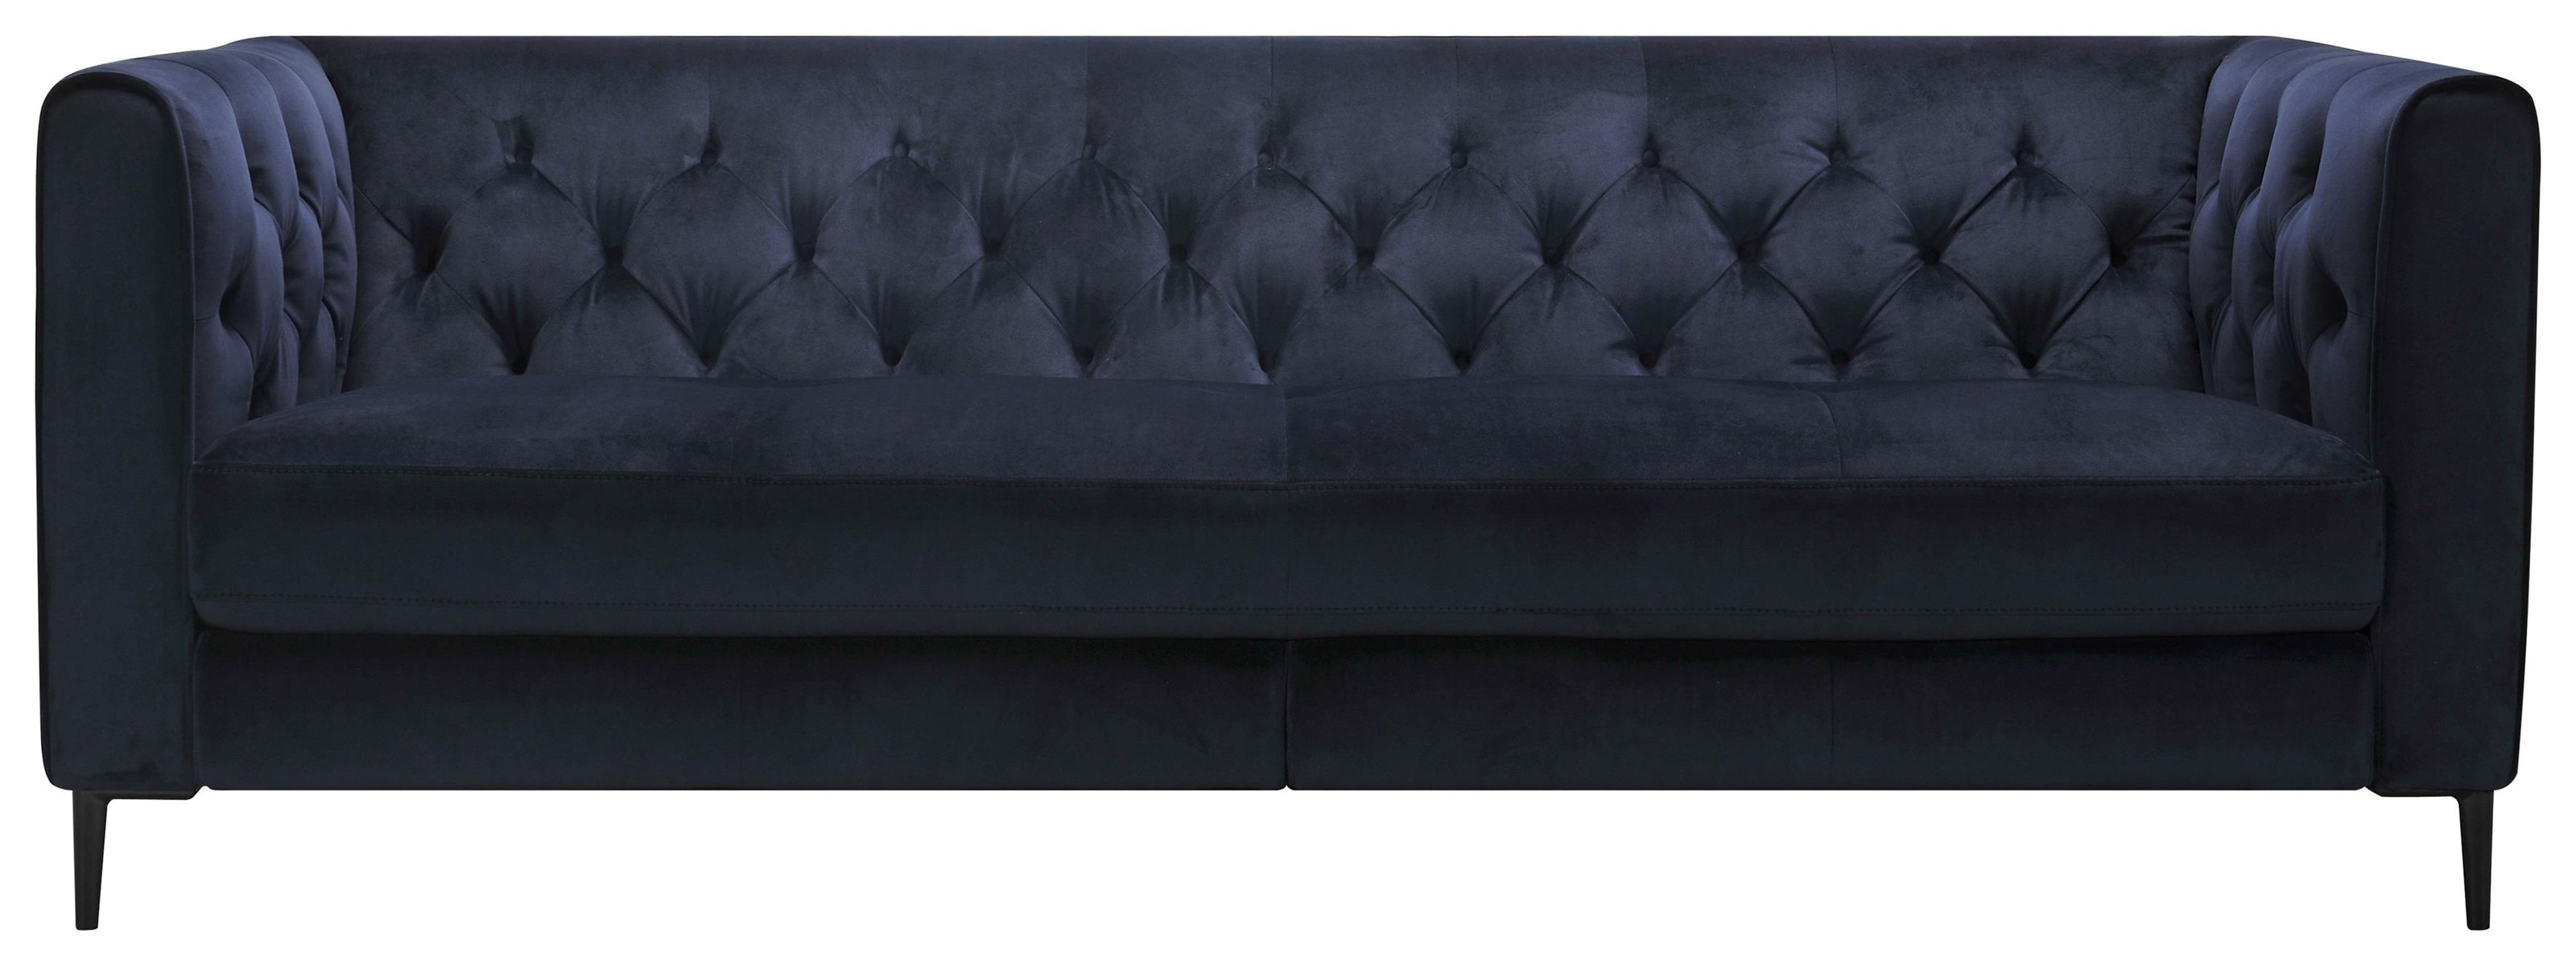 Monroe Sofa by Violino at HomeWorld Furniture